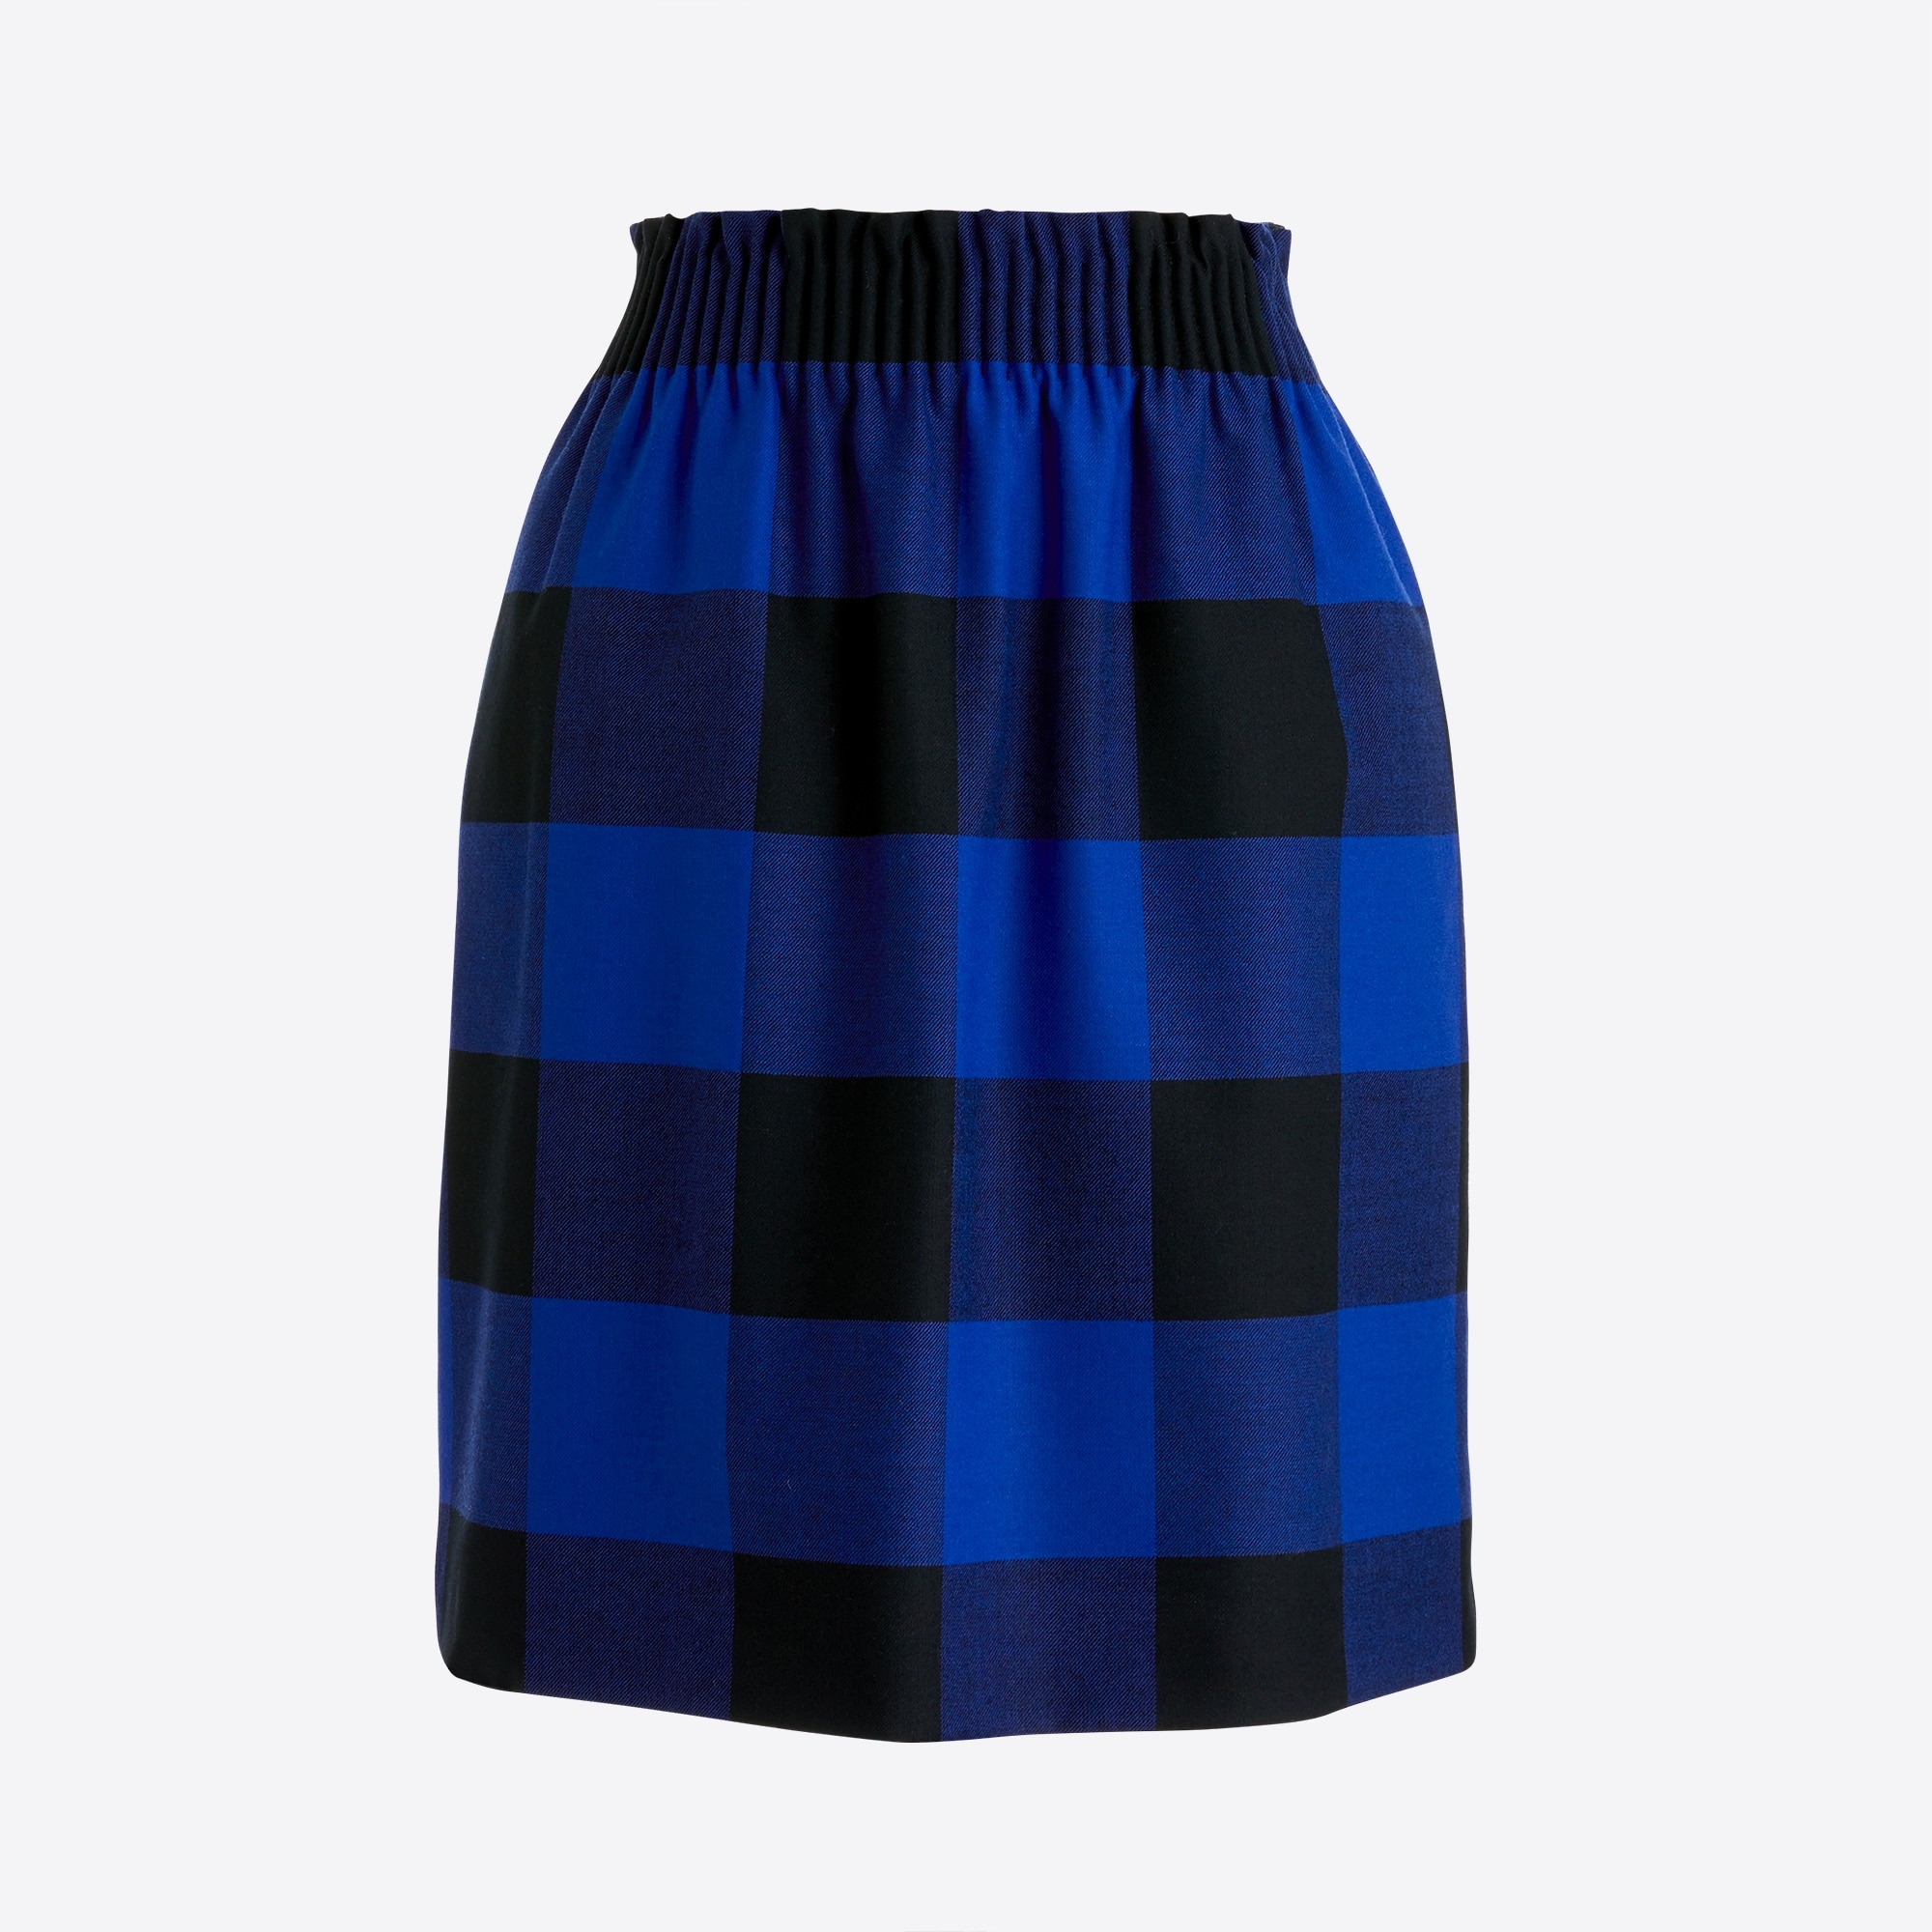 Image 2 for Wool sidewalk skirt in plaid